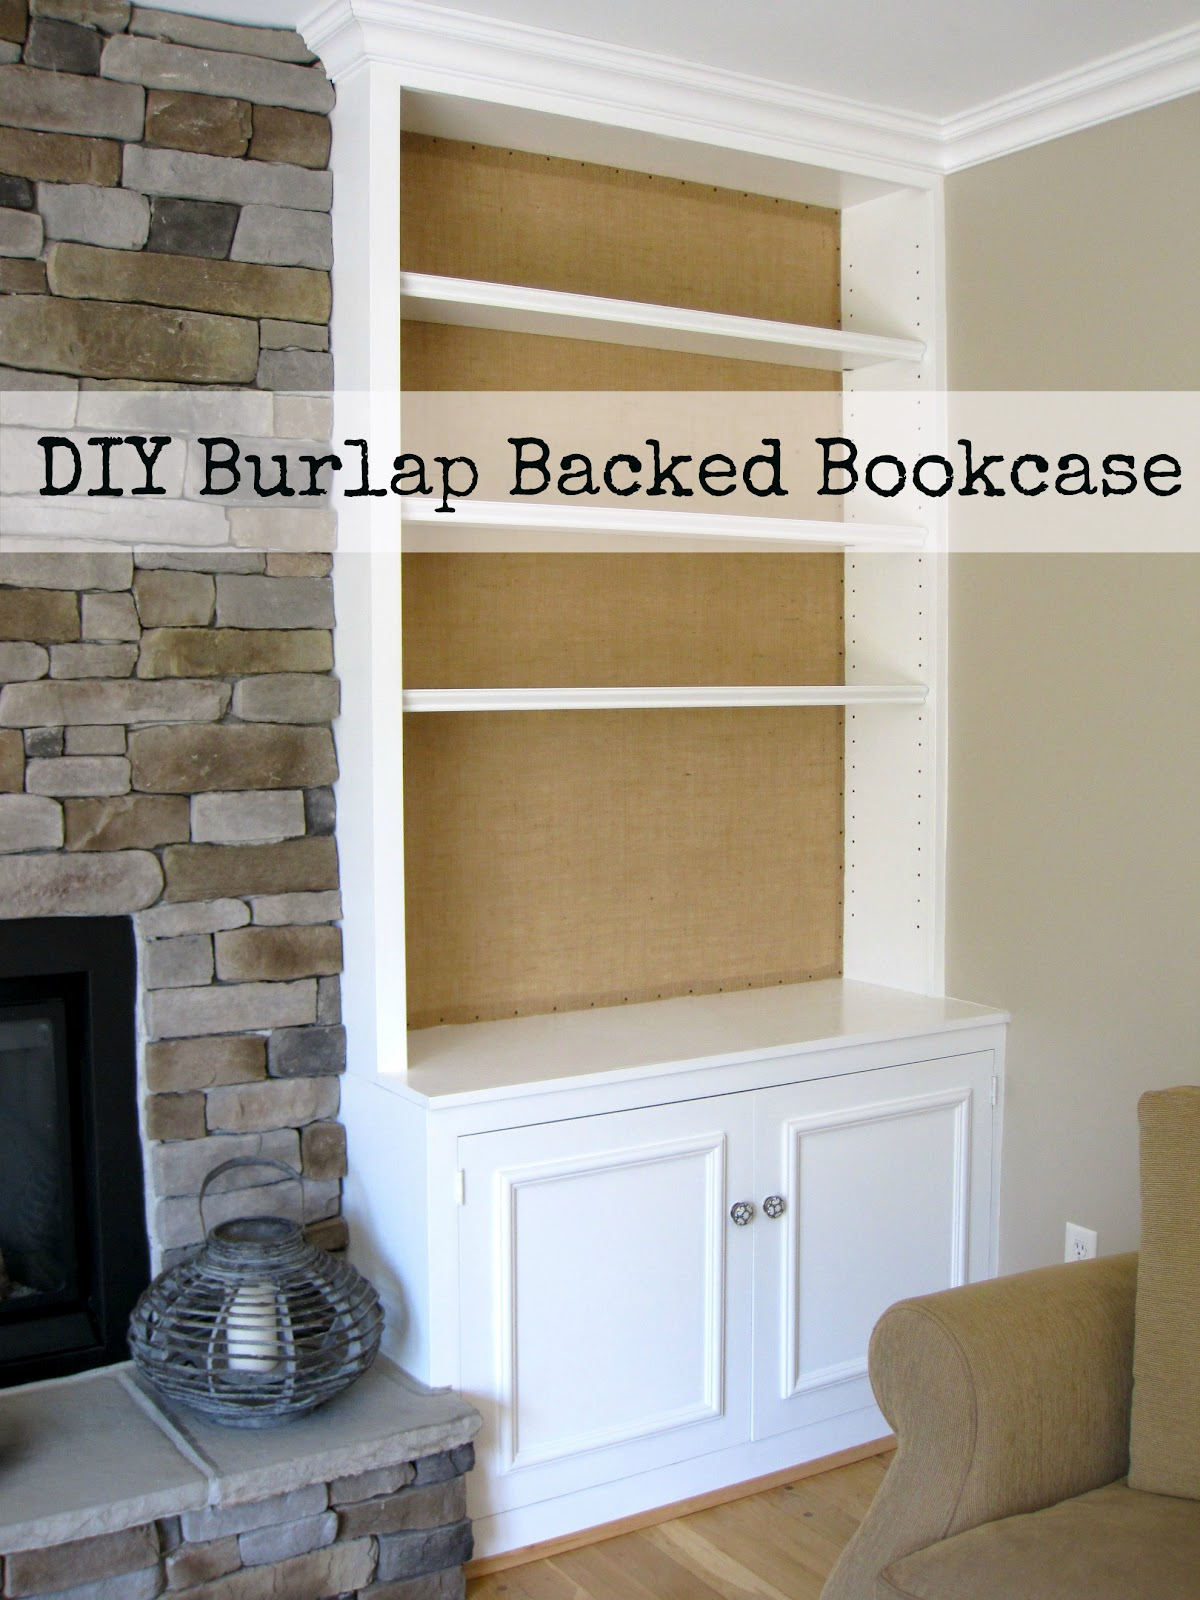 DIY Project: Burlap Backed Bookcases | Driven by Decor